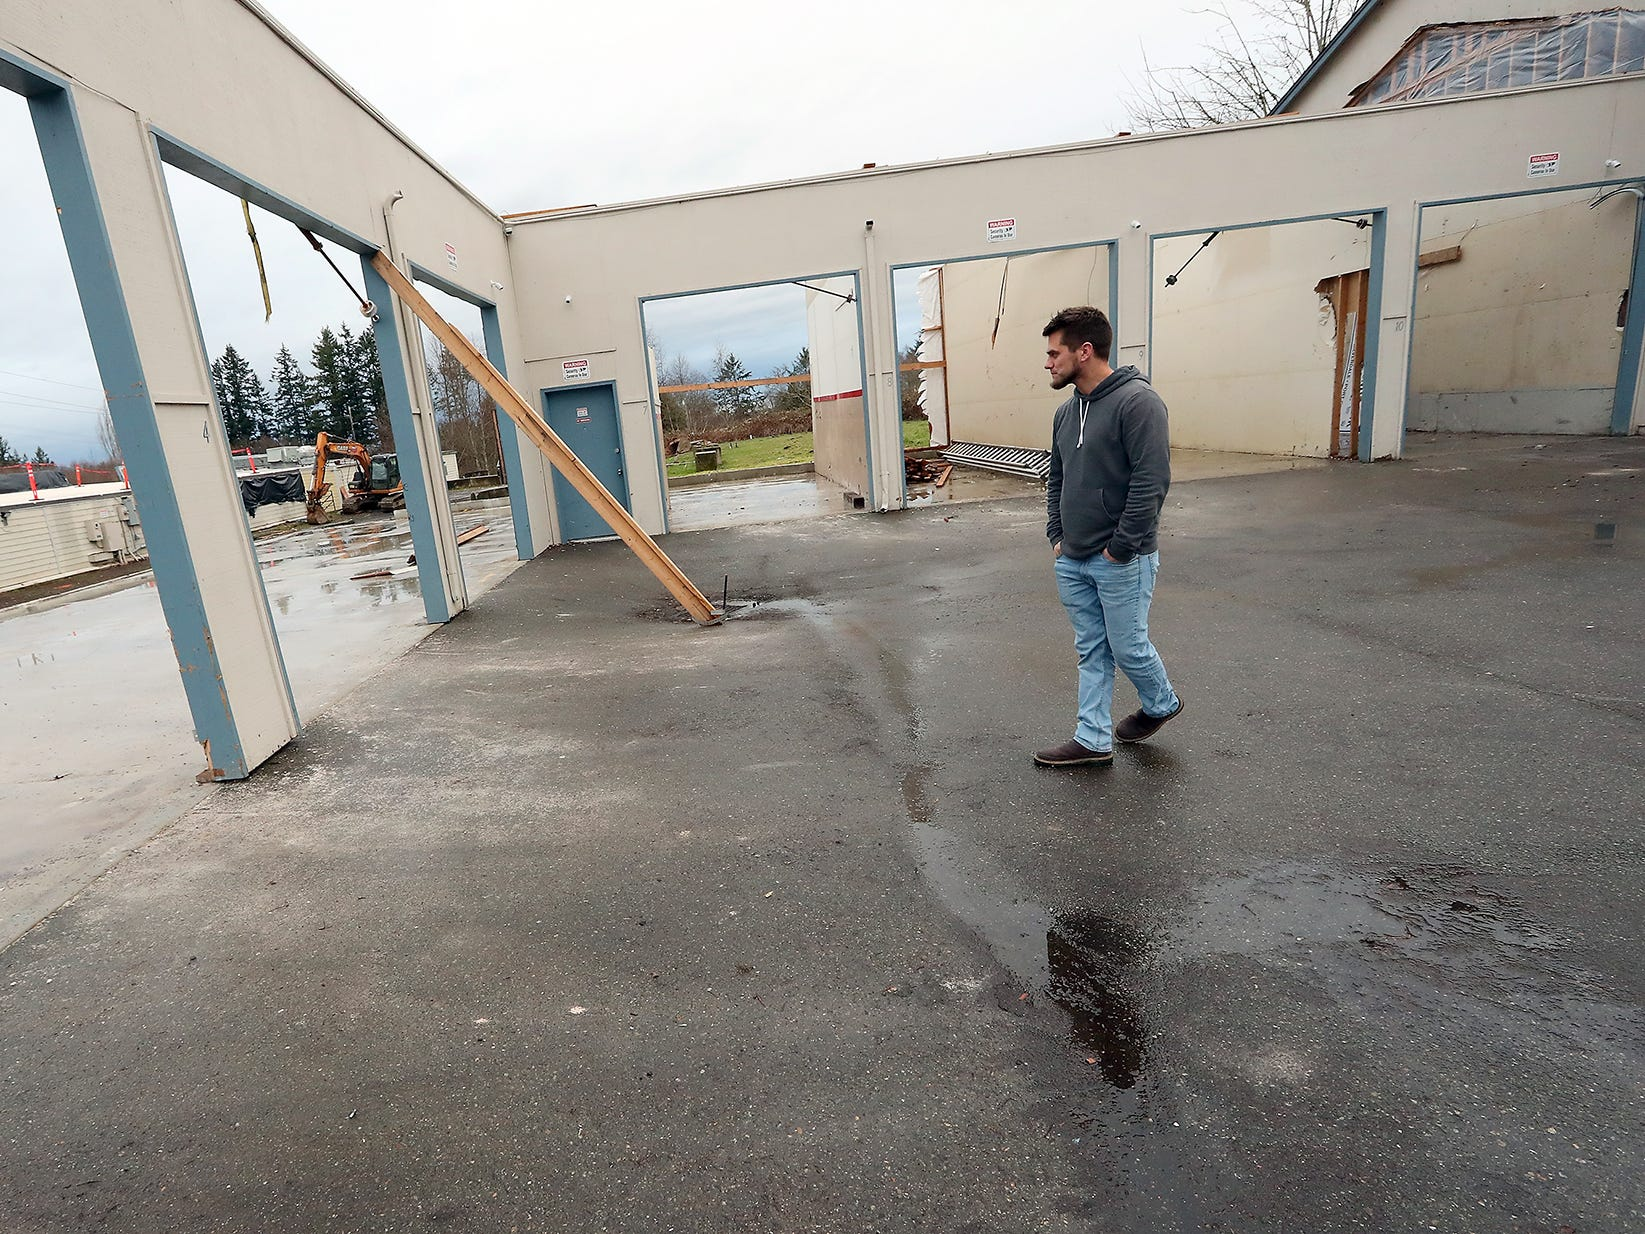 Brady Mueller, of Quality Coating Enterprises, walks through what is left of the storage units at Bethel Square where he and co-owner Austin Siegel ran their business before it was destroyed by the tornado, in Port Orchard on Thursday, January 17, 2019.